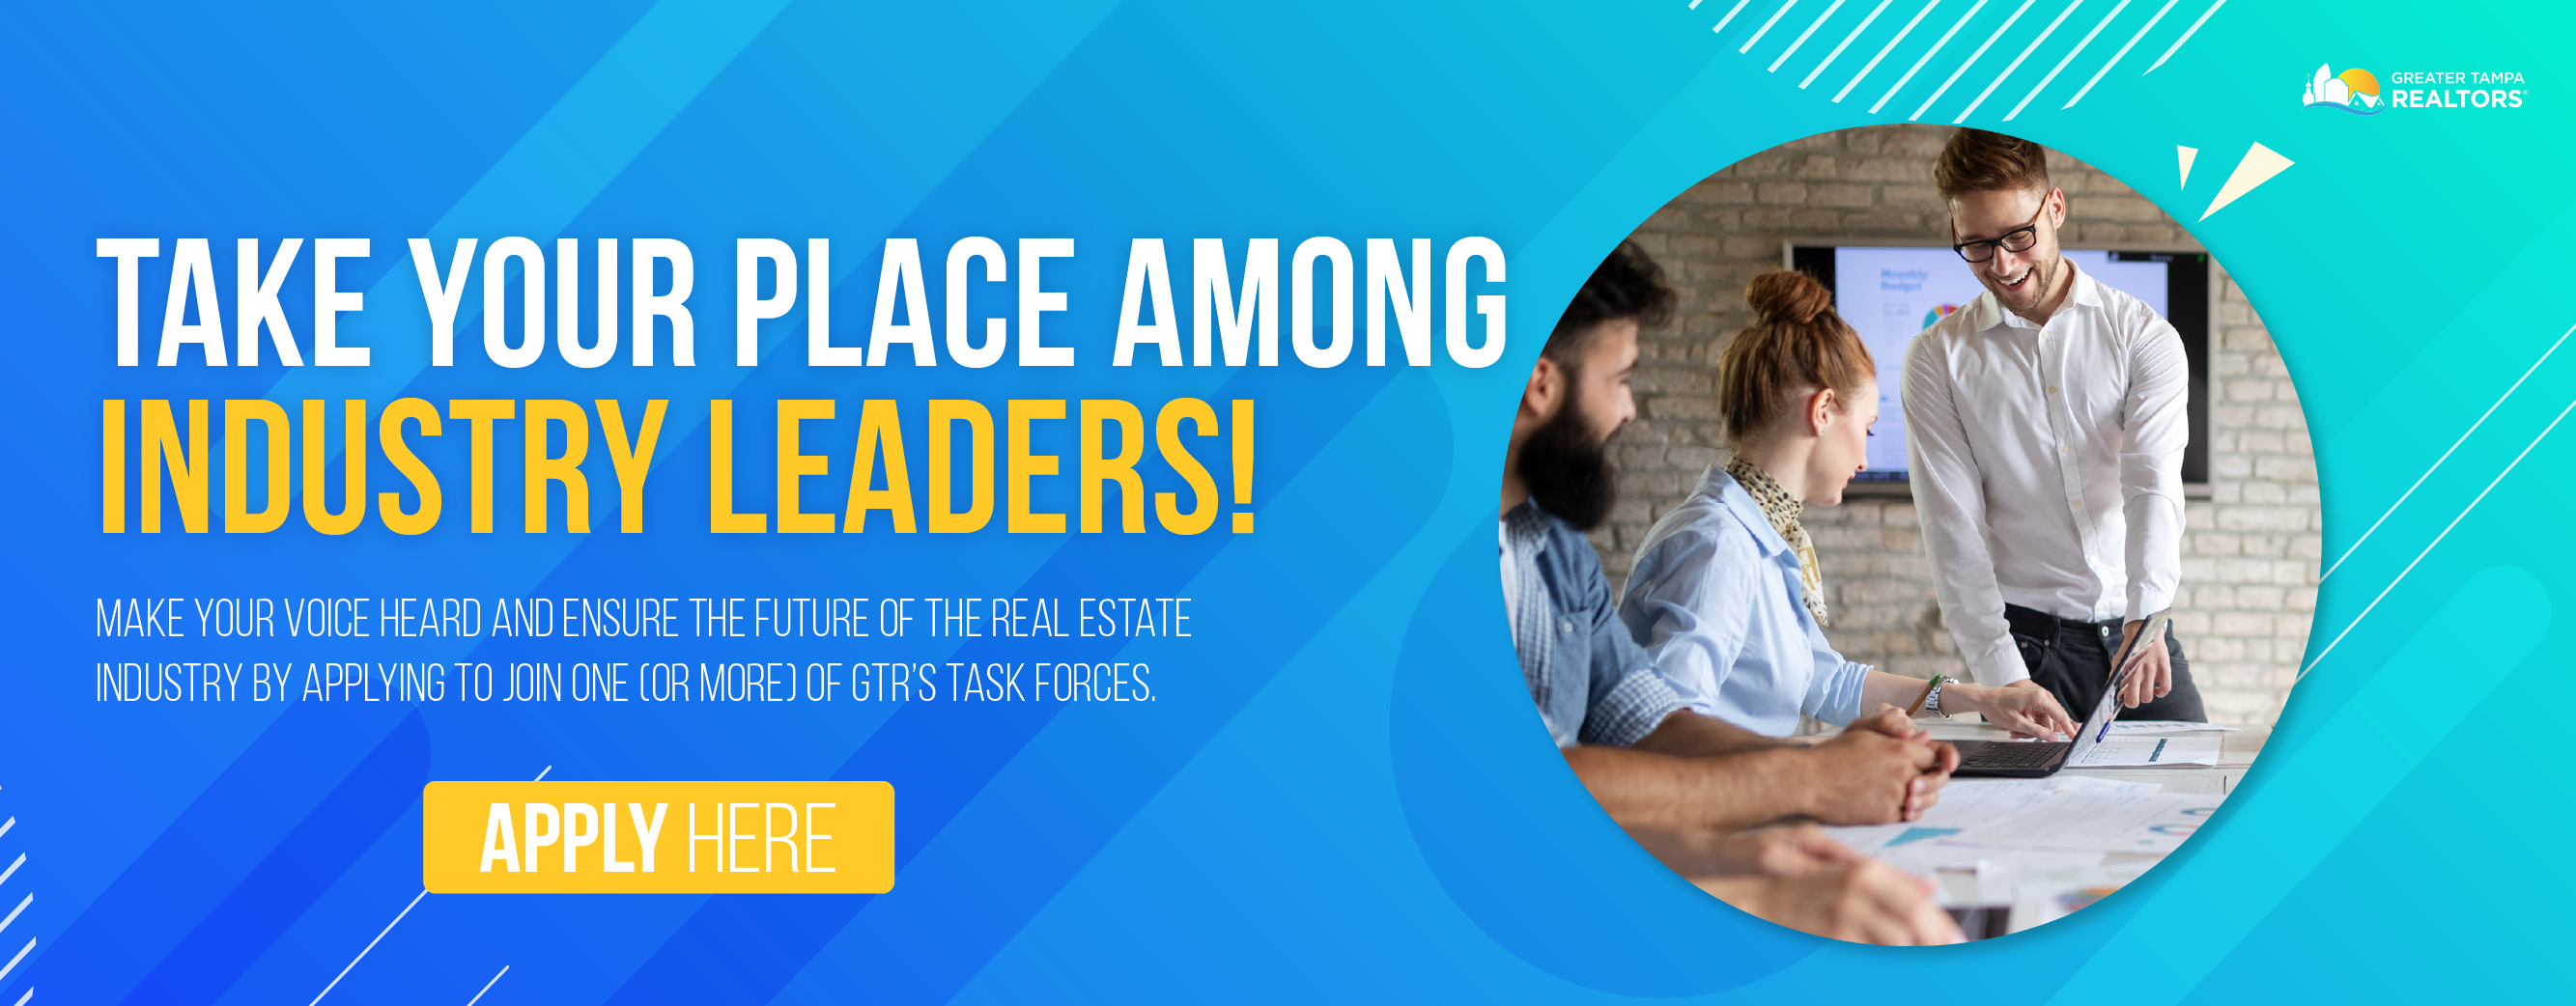 Make your voice heard and ensure the future of the real estate industry by applying to join one or more of GTR's Task Forces.